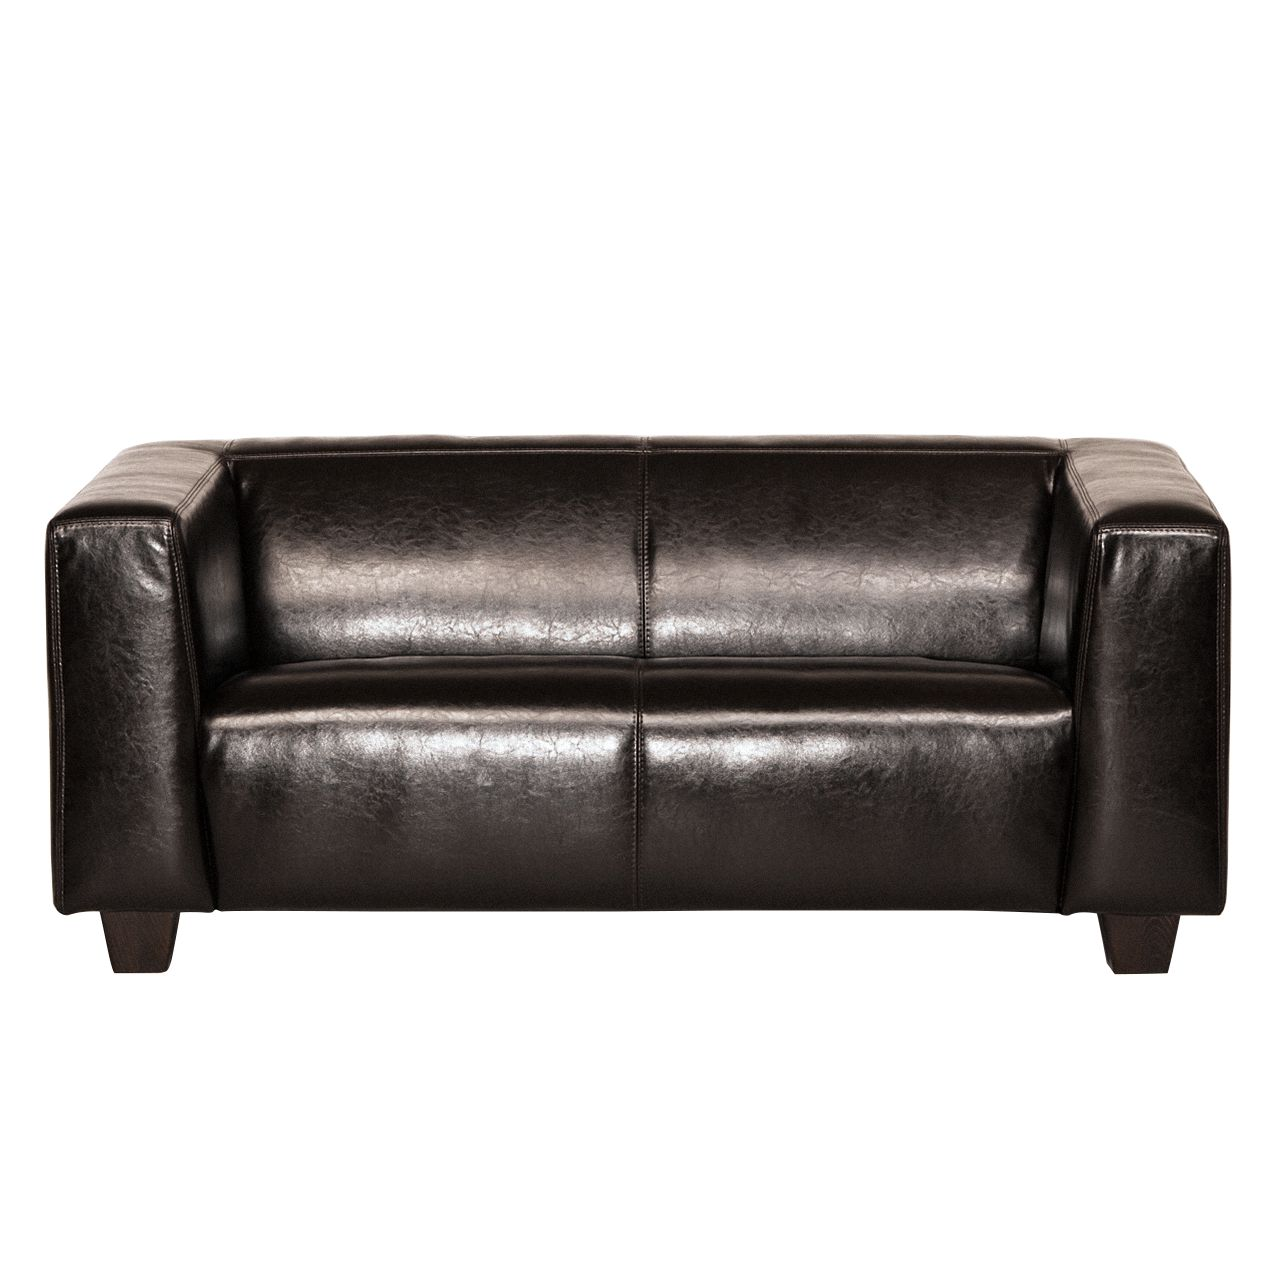 Nespolo Sessel Moderne Sofa Garnituren